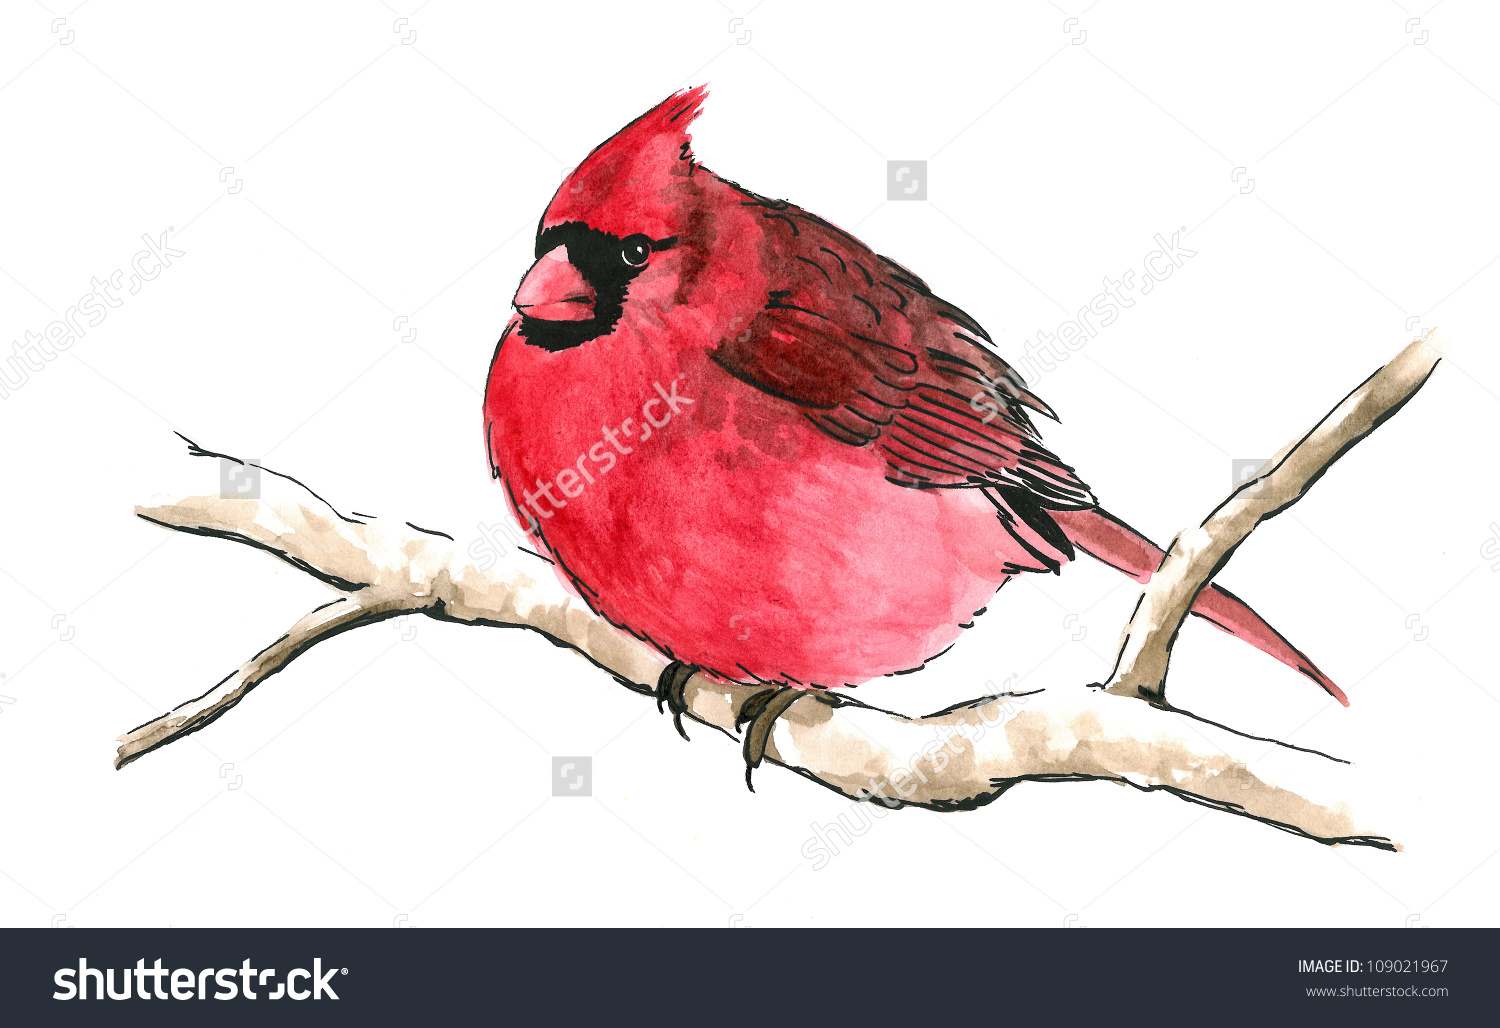 Bright Red Cardinal Bird Perched On Branch Isolated White.